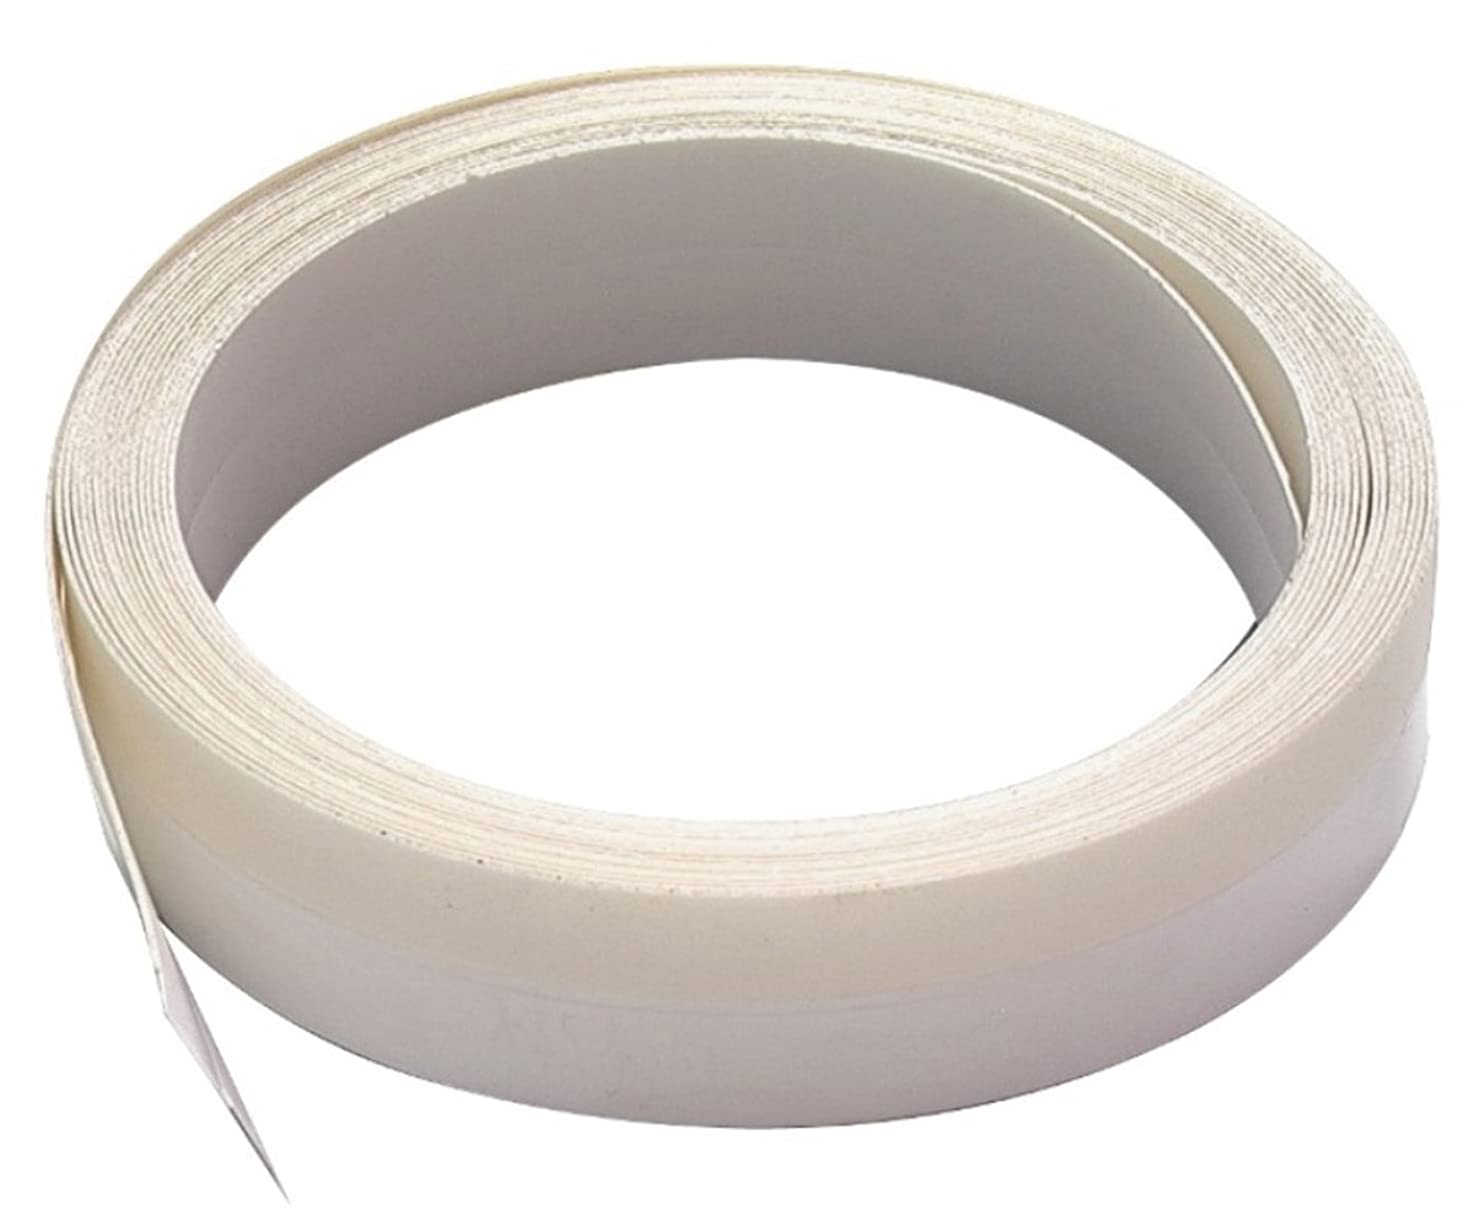 M-D Building Products 3525 M-D 0 V-Flex Weather-Strip with Adhesive Back, 17 Ft L X 7/8 in W, Polypropylene, White